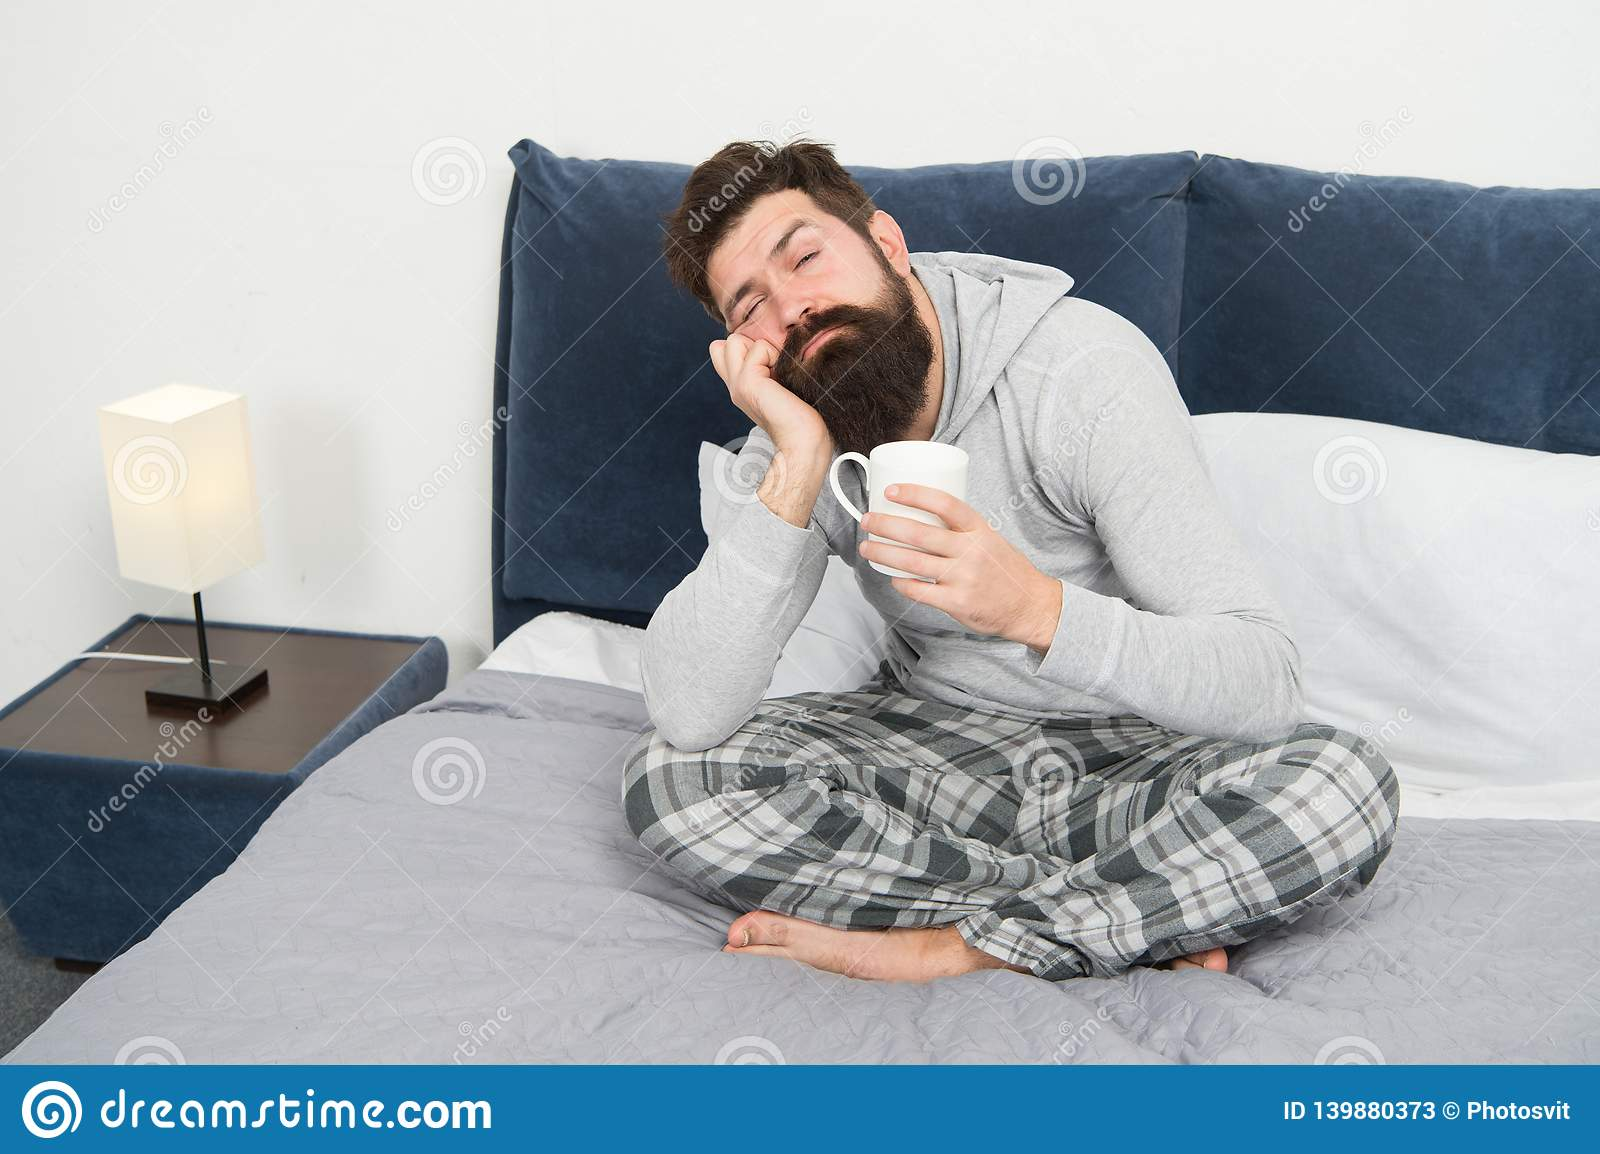 Good gay begins from cup of coffee. Coffee affects body. Man handsome hipster relaxing on bed with coffee cup. Coffee